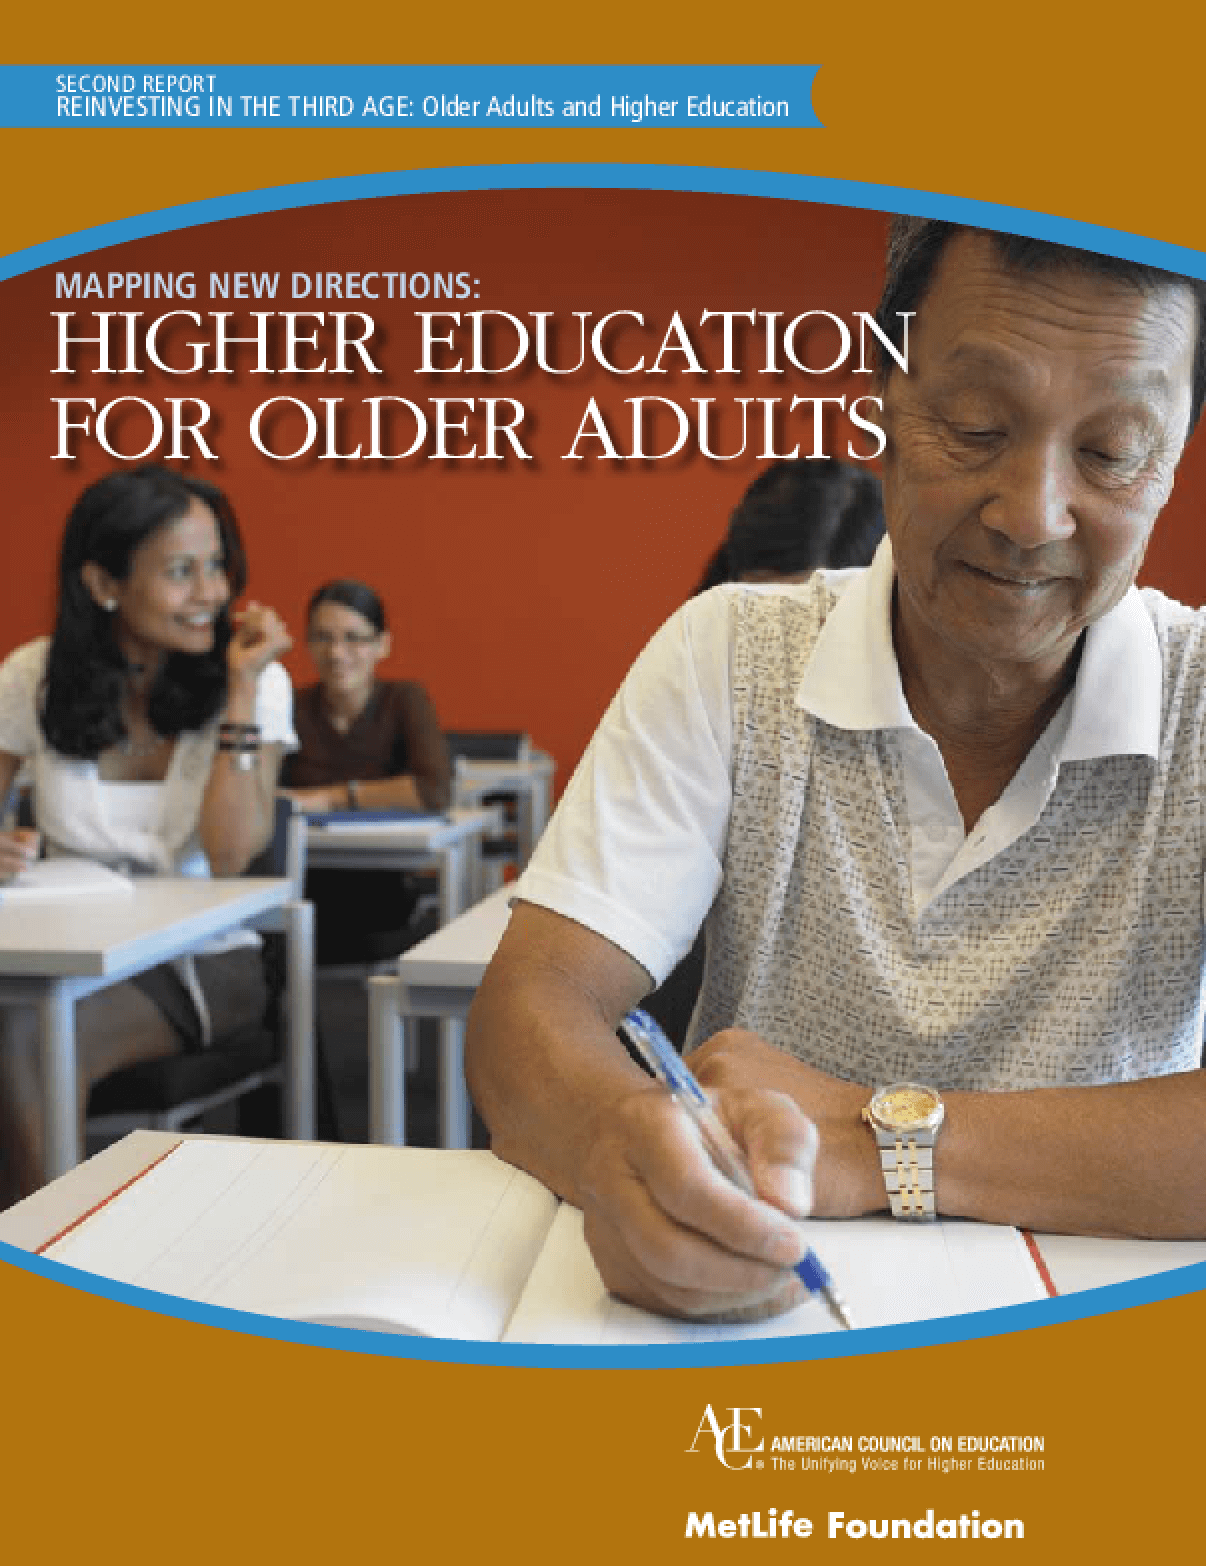 Mapping New Directions: Higher Education for Older Adults